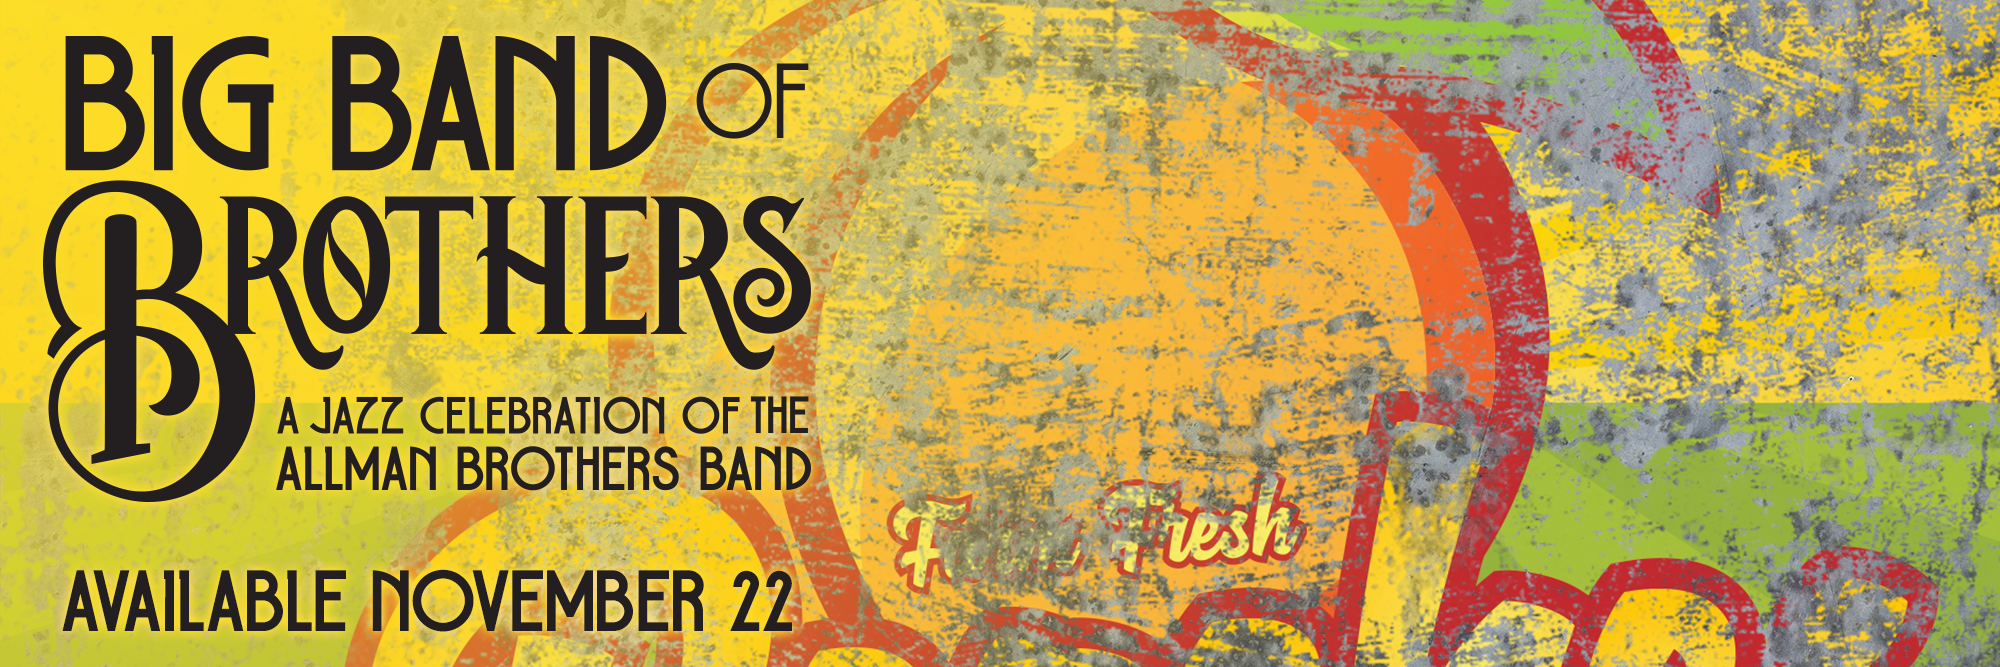 The Allman Brothers Band Hit Songs - Billboard Charts